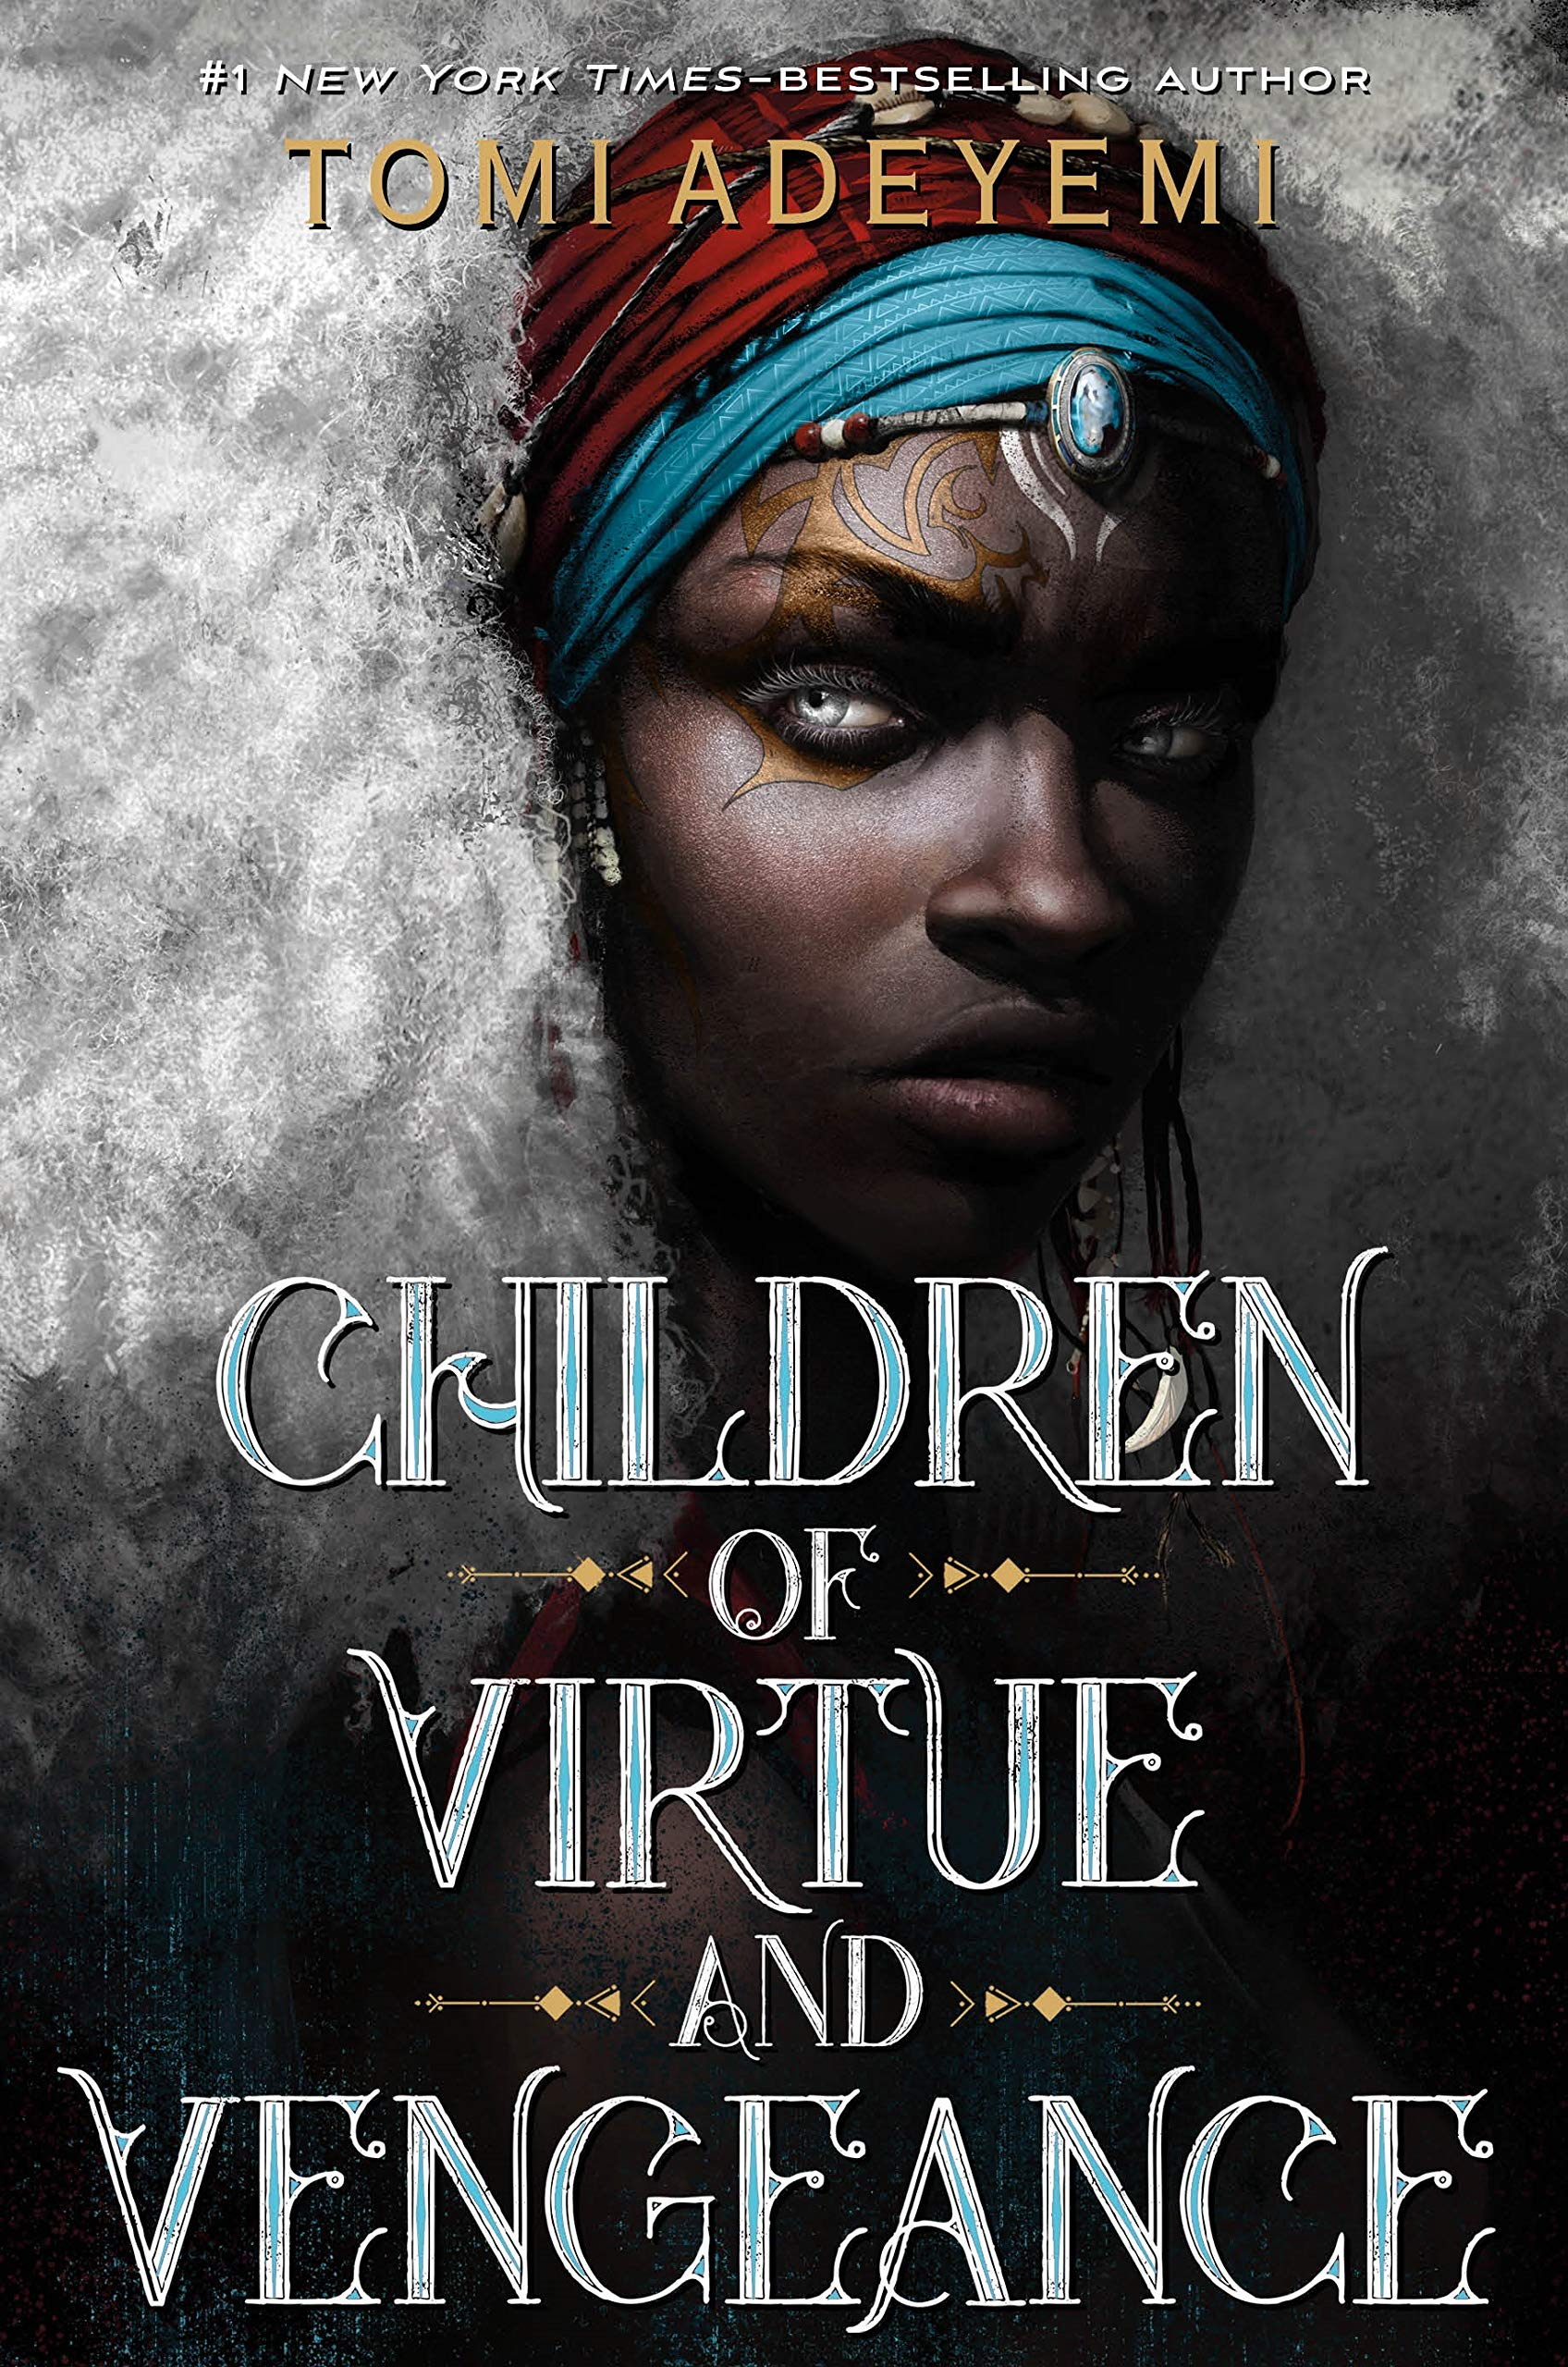 Cover of the book Children of Virtue and Vengeance